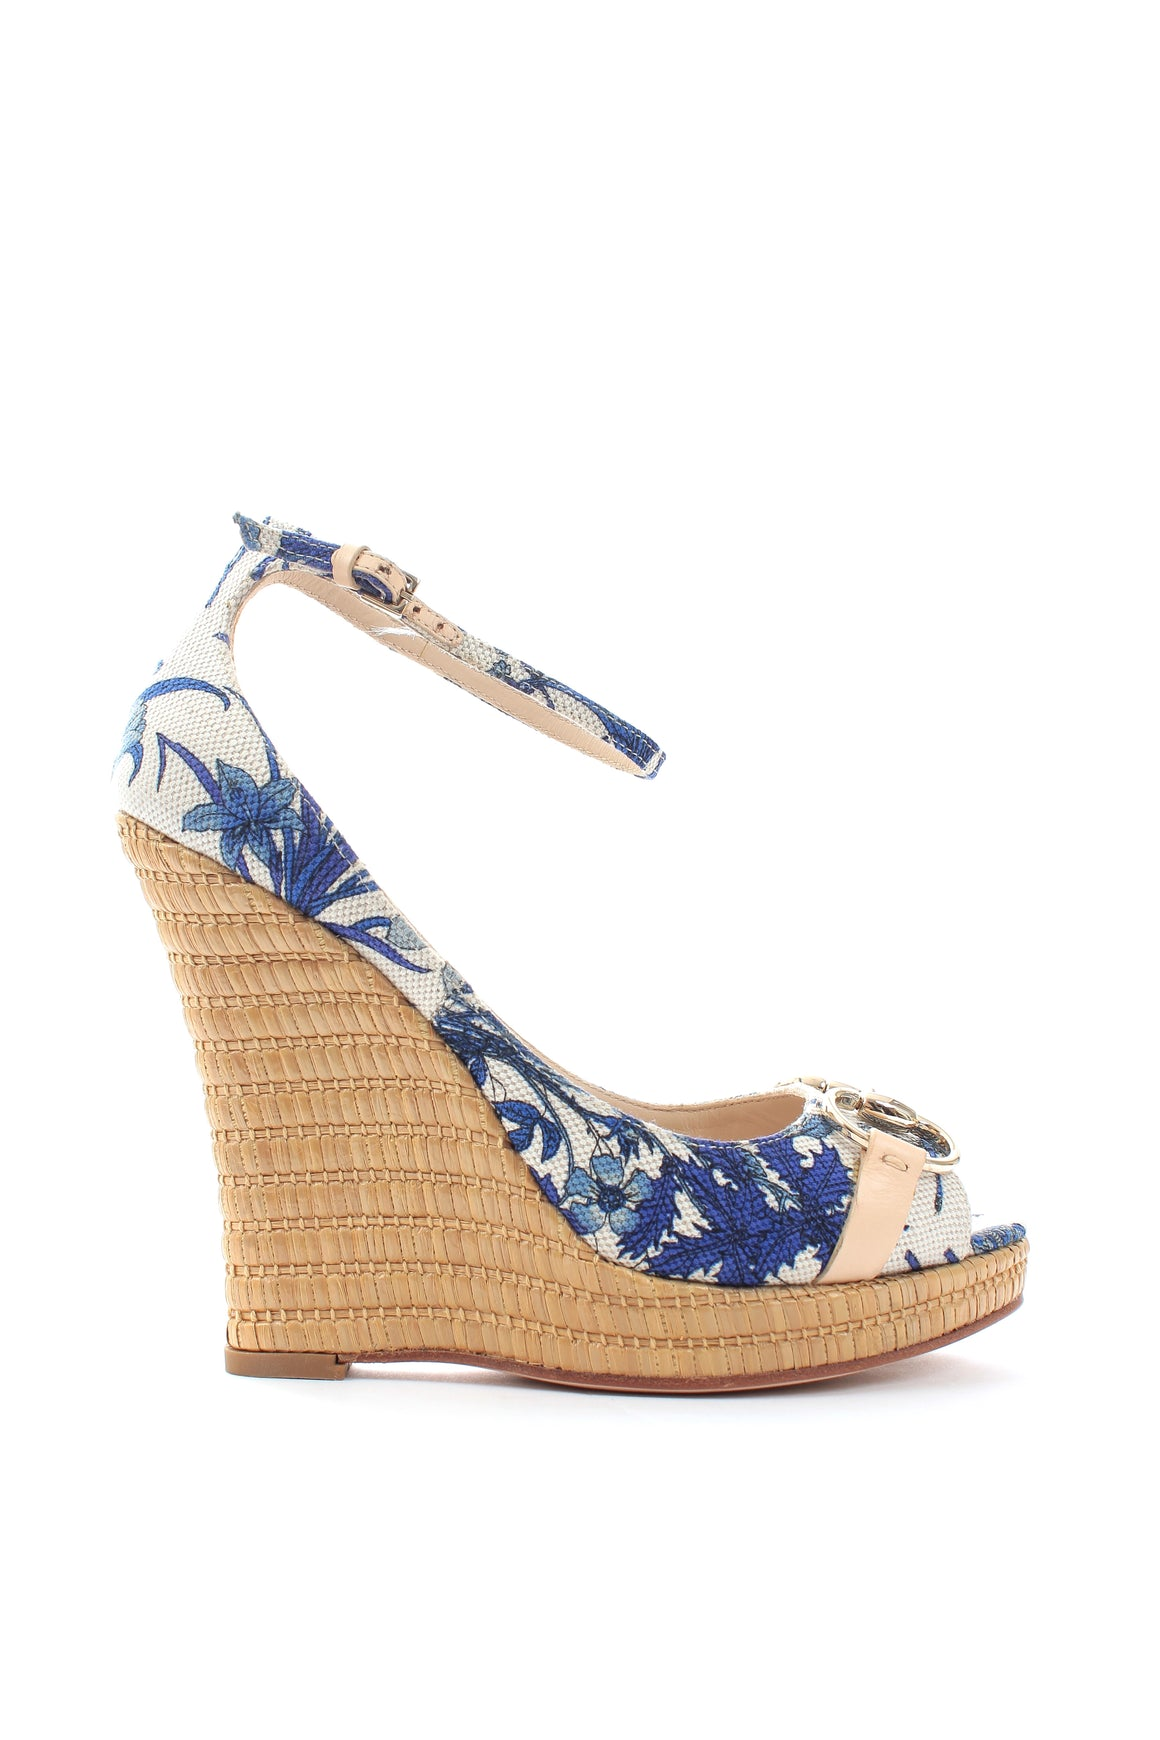 Gucci Horsebit Floral-Printed Raffia Wedge Sandals